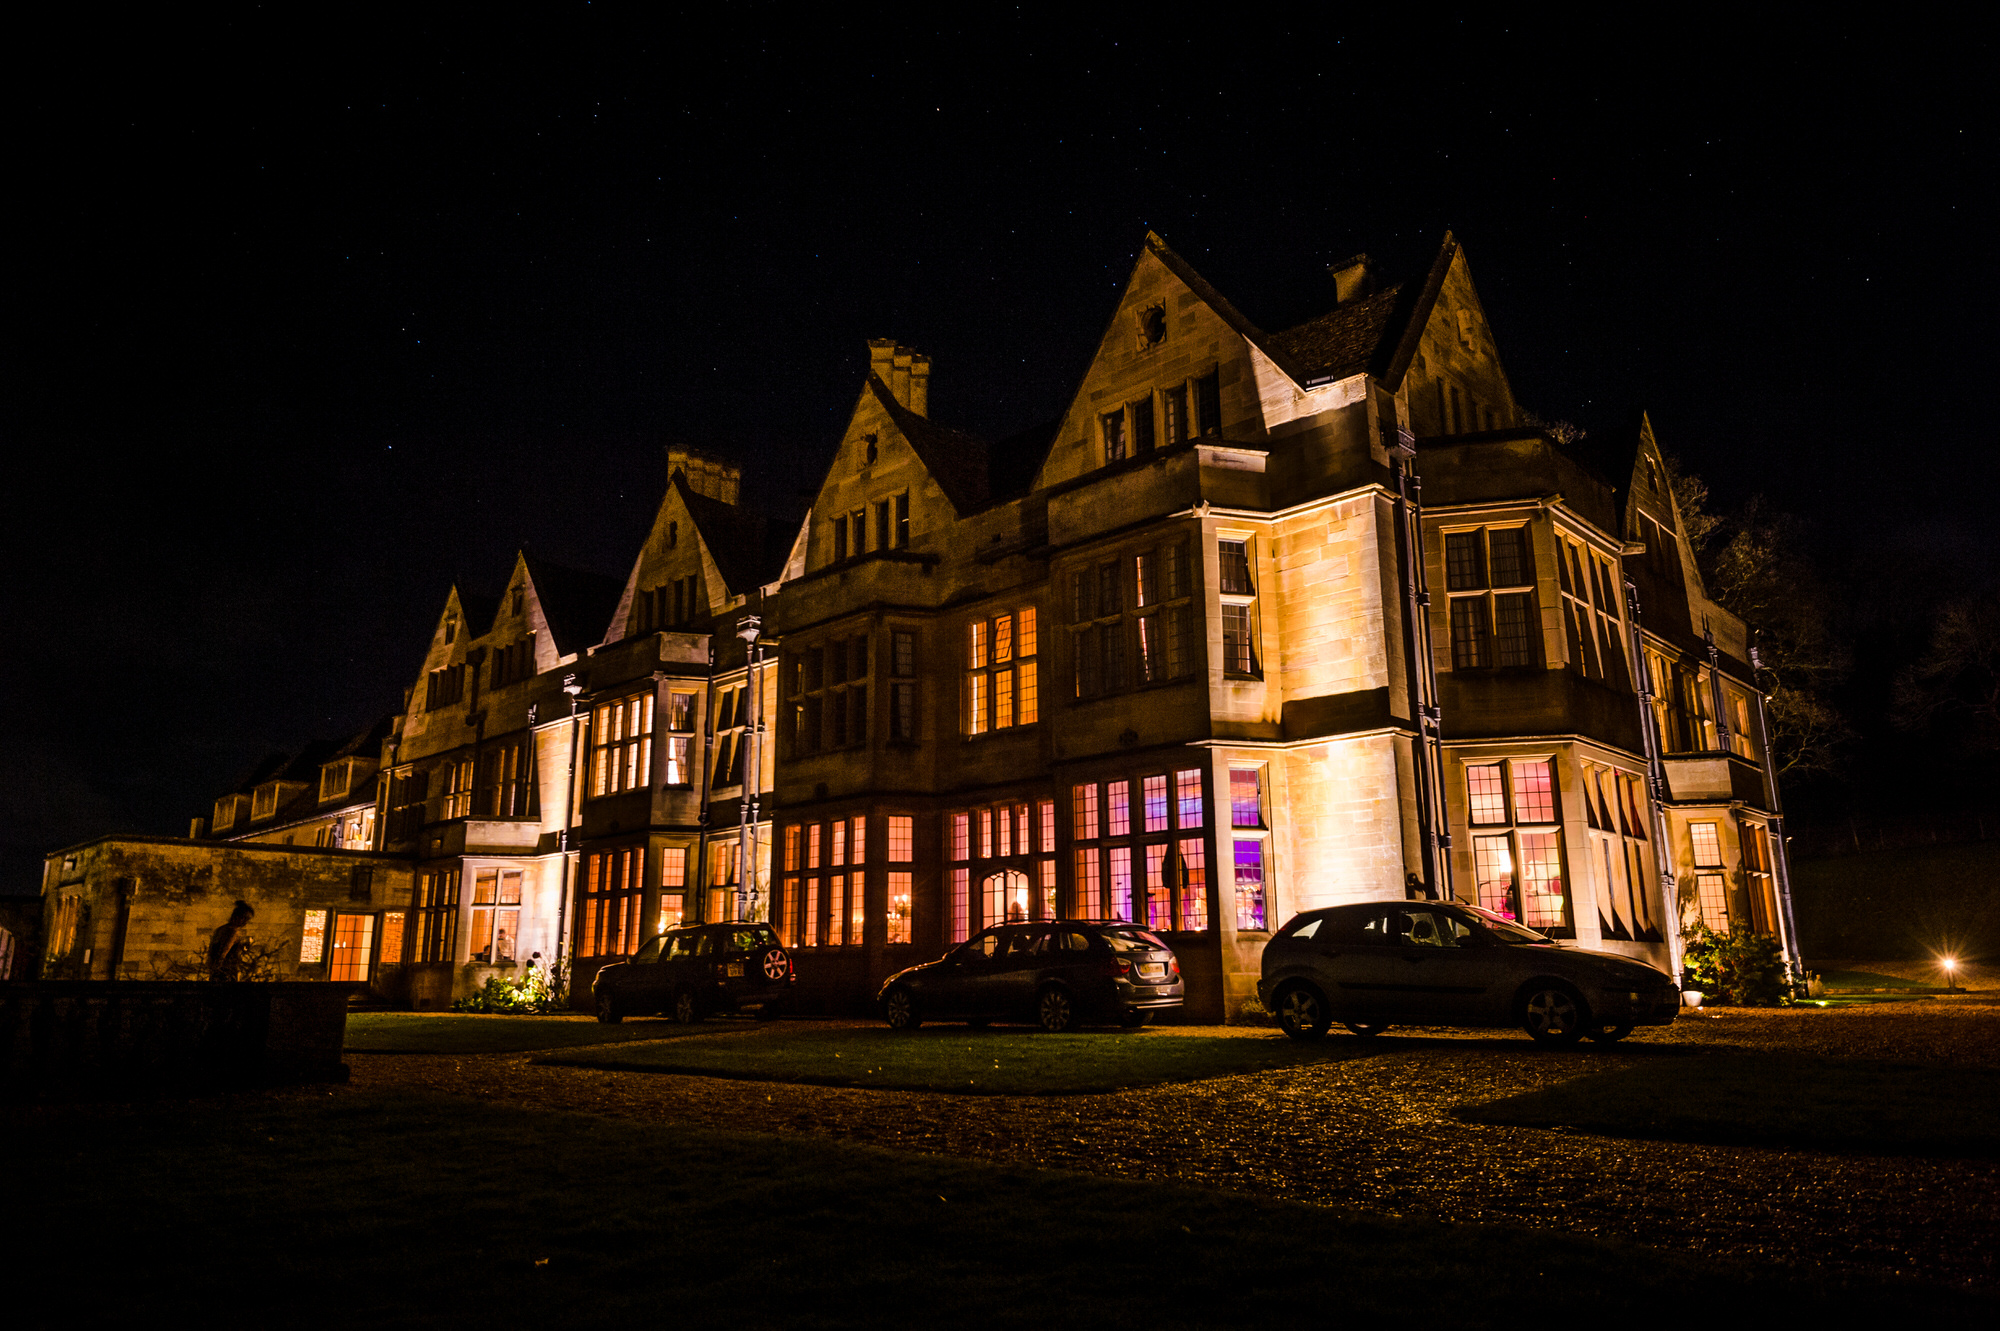 Coombe lodge wedding venue at night